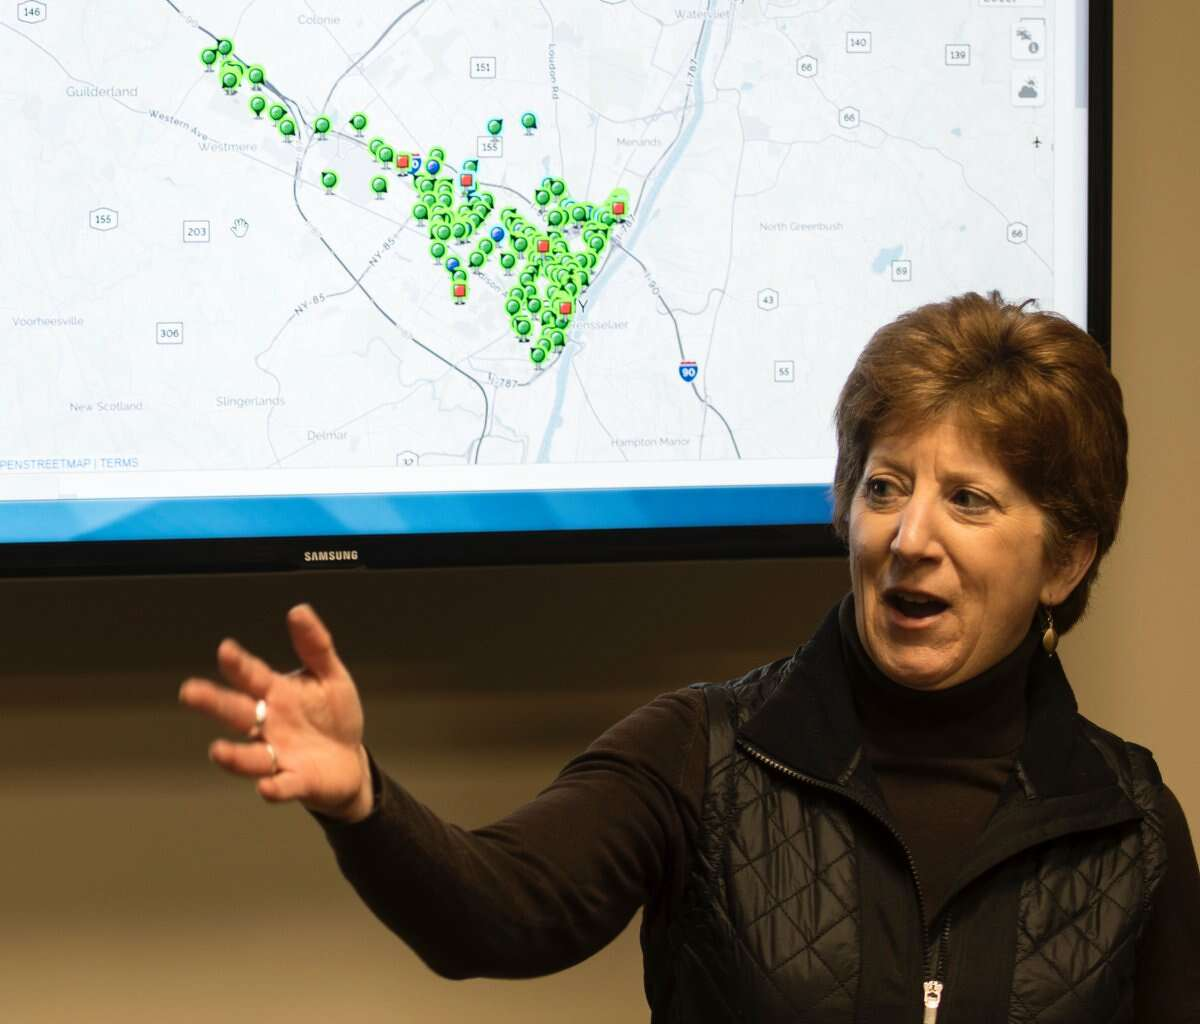 Albany Mayor Kathy Sheehan on Thursday declared a state of emergency in Albany while a powerful nor'easterdumps heavy snow on the Northeast. In this photograph, the mayor details her plan for snow coverage as a snowstorm hit the city onFeb. 7, 2018. (Skip Dickstein/Times Union)